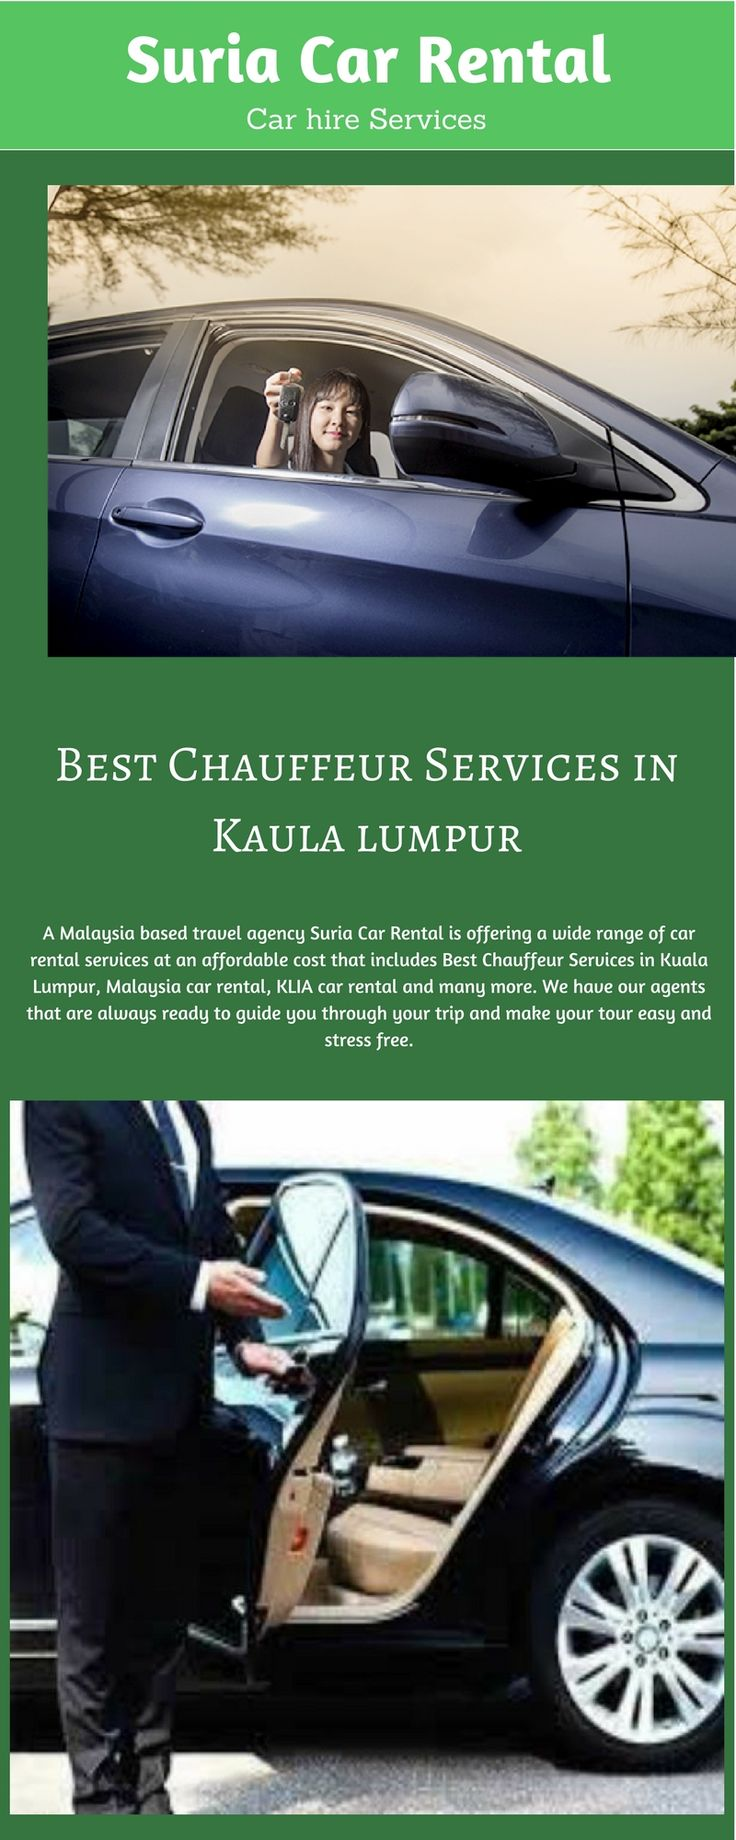 KLIA Car Rental - Suria Car Rental offers best weekend discounts on car rental in Malaysia. We provide our services all over the Malaysia including Kuala Lumpur and KLIA. If you want to hire a car around KLIA, you can just call on this number +60356211470 or visit our website https://www.suriacarrental.com.my/. We also offer car leasing services, to know more about it, you can visit our website.